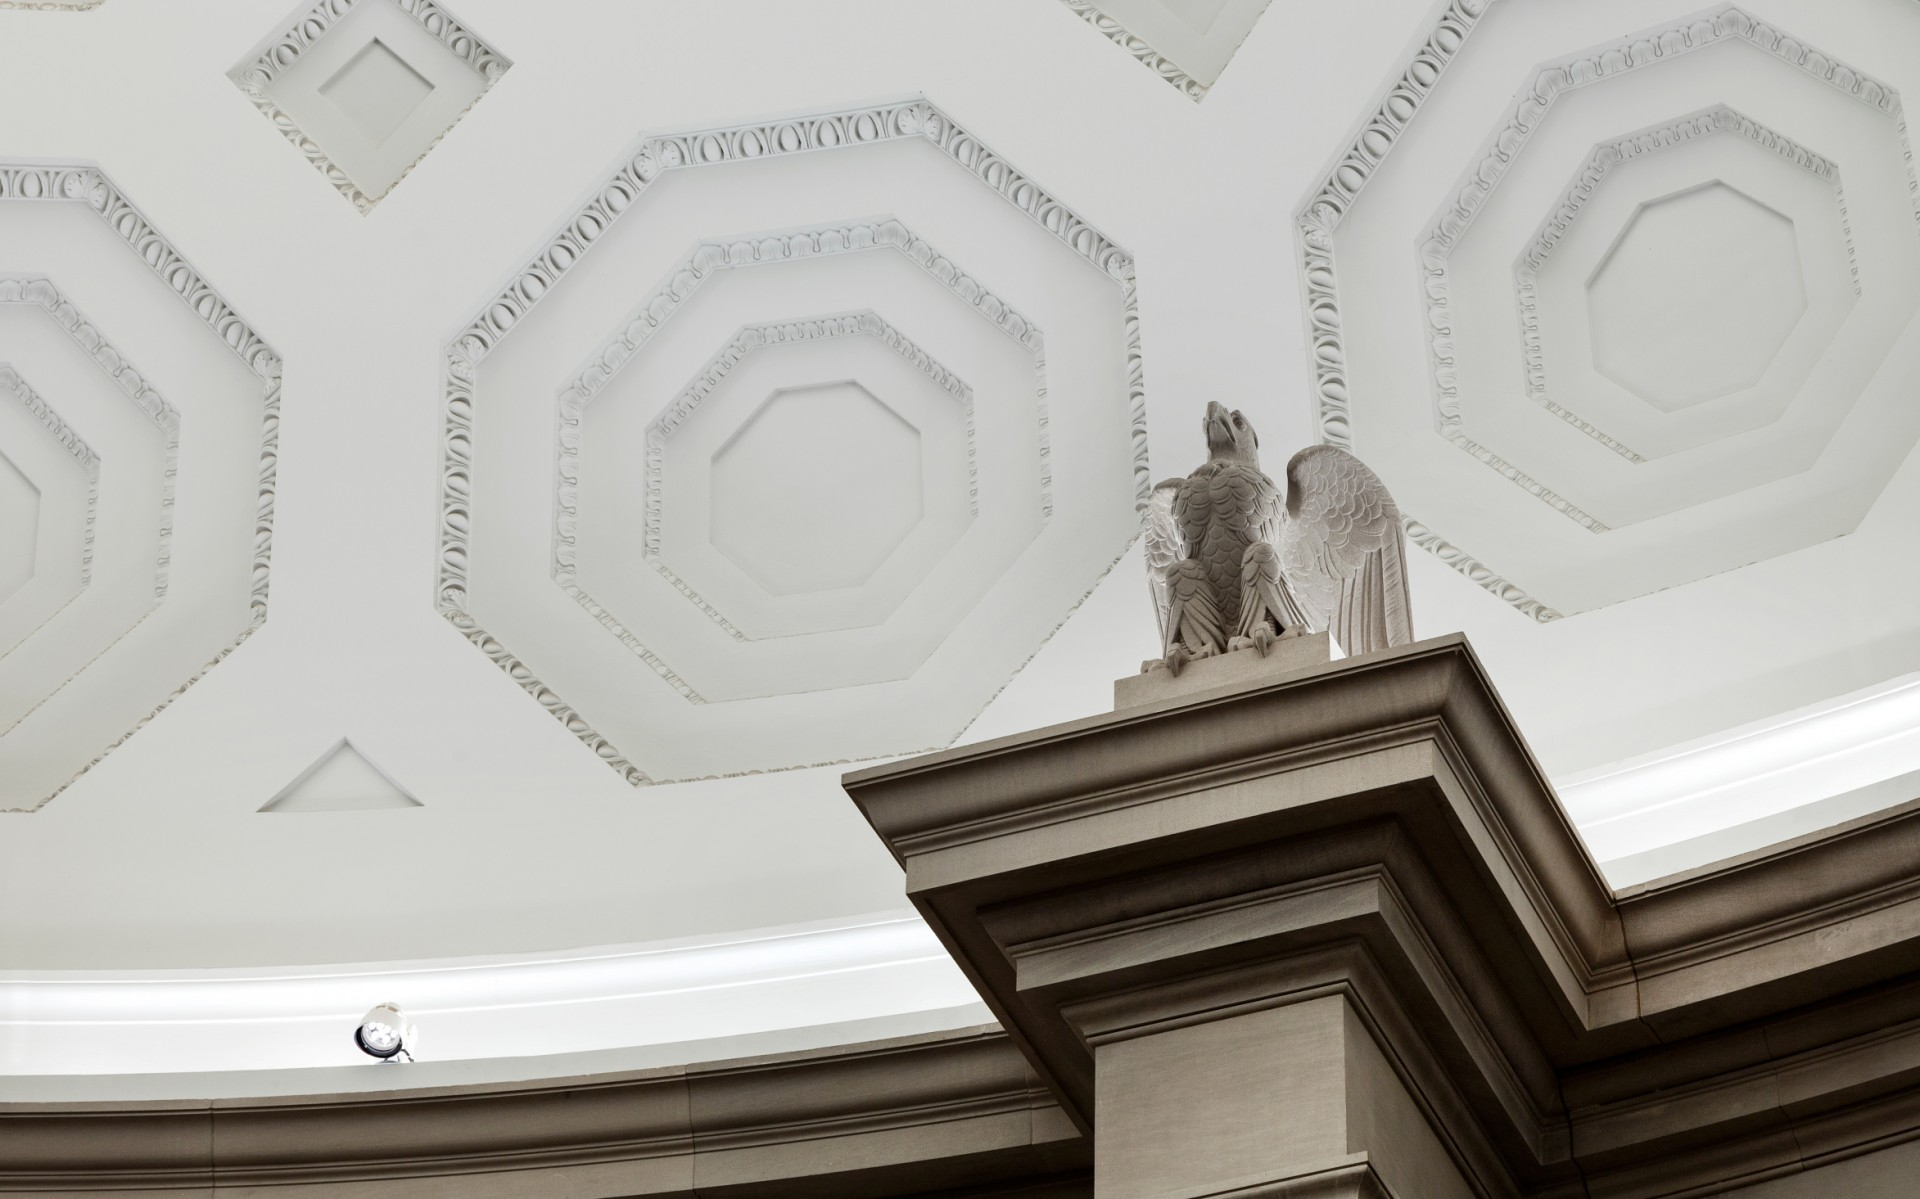 Mounted on the ledge, the 2850K luminaires are finished in white to blend into the background.